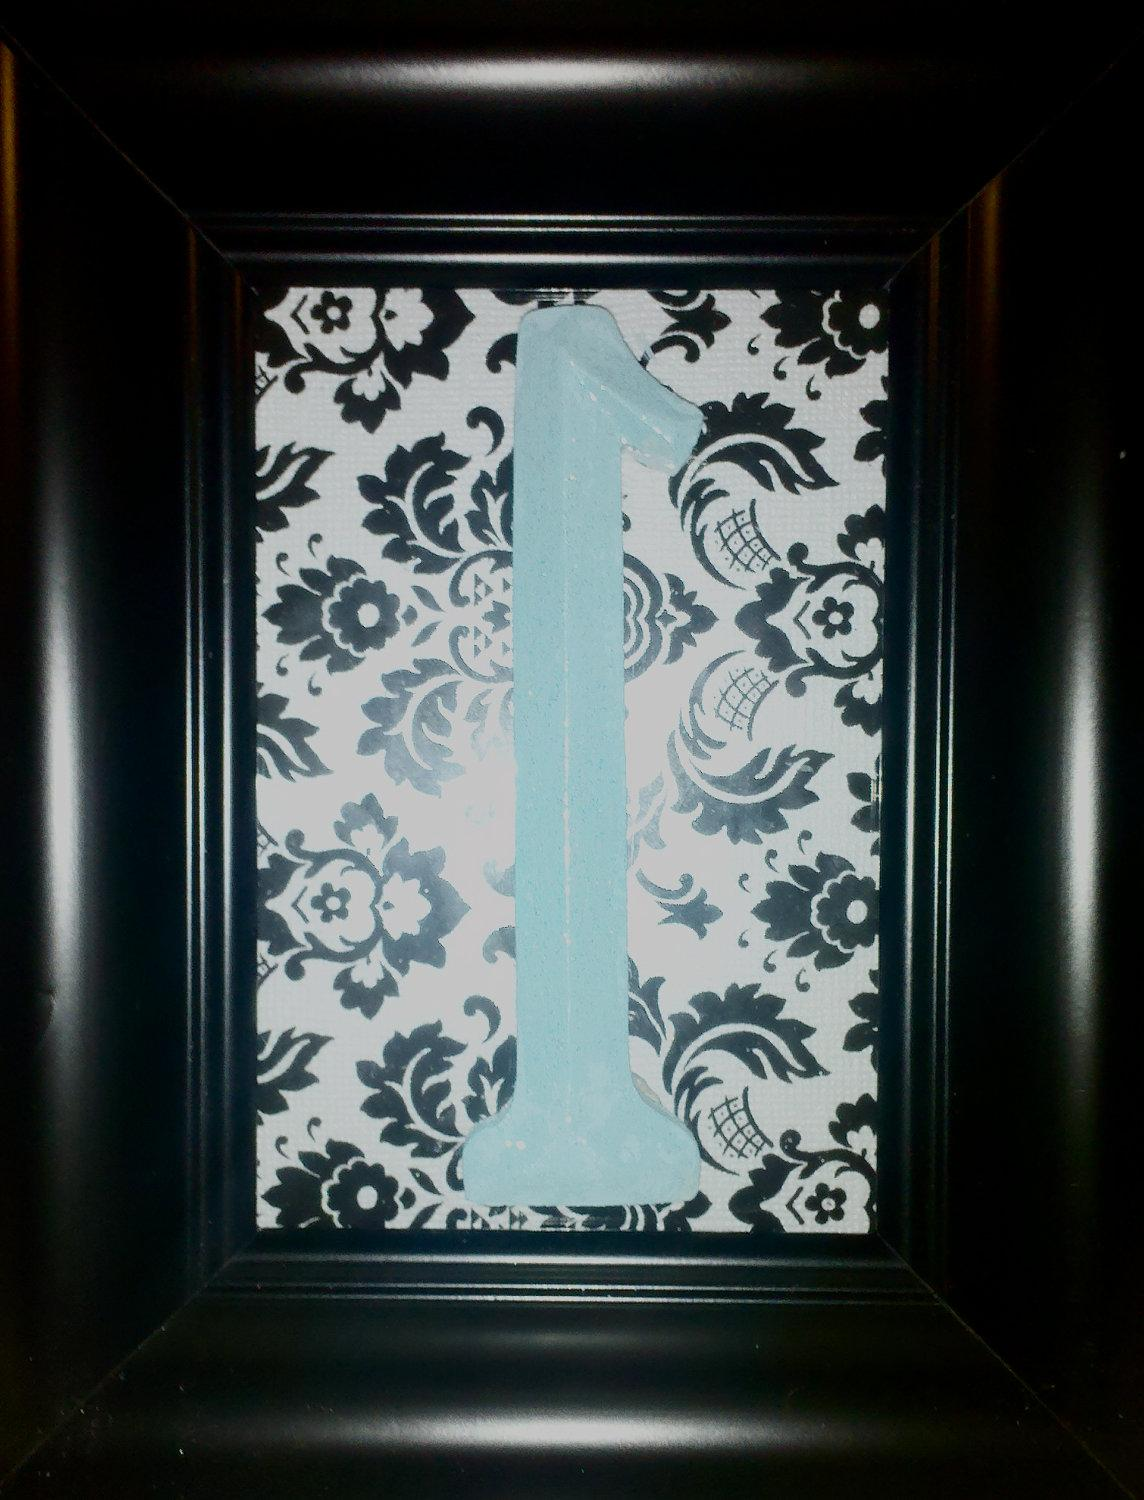 Tiffany Blue Wedding & Damask Table Number Frame